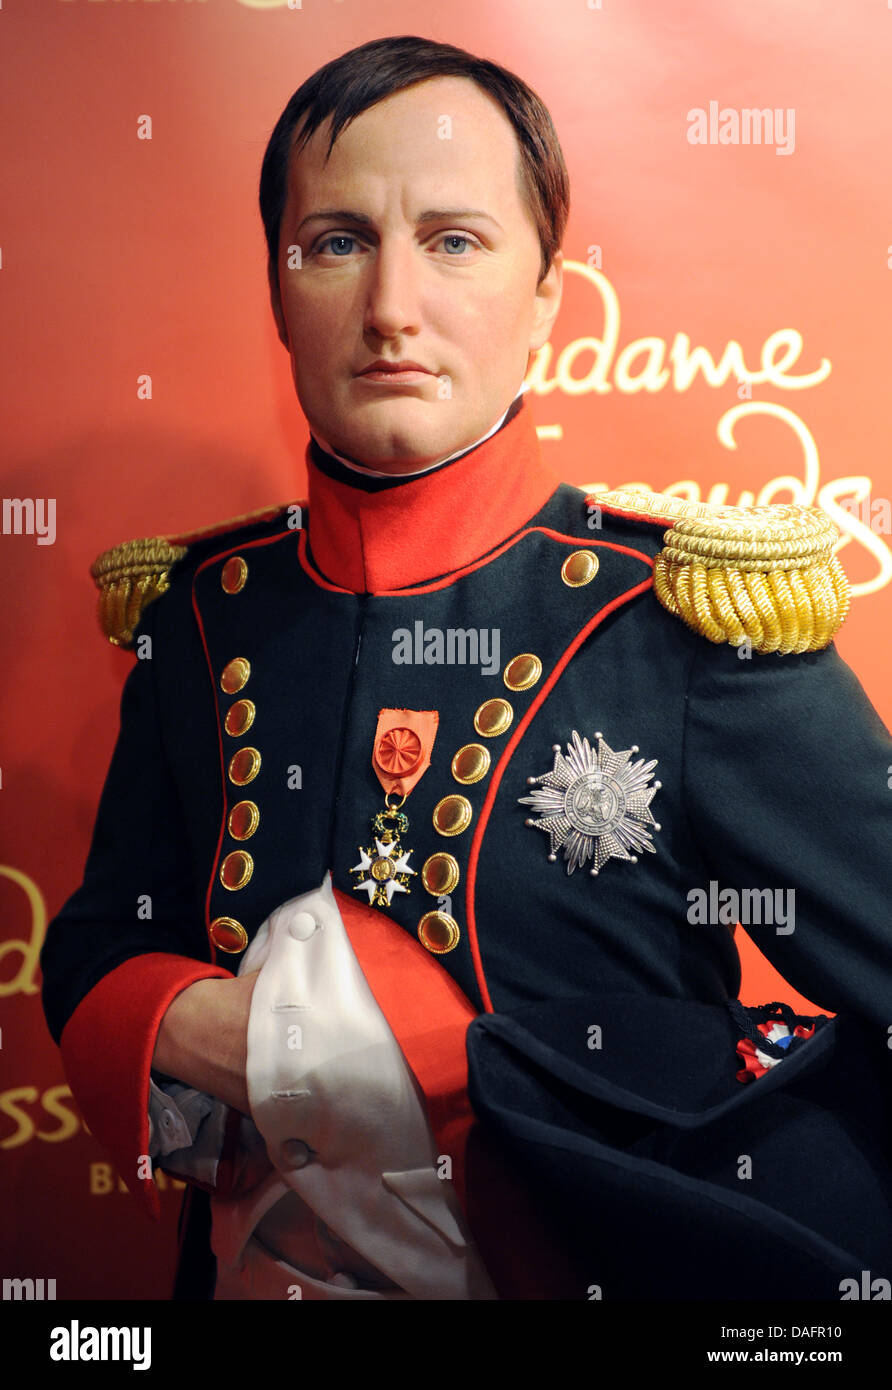 The wax figure of Napoleon Bonaparte stands in the Madame Tussauds wax museum in Berlin, Germany, 08 December 2011. Stock Photo